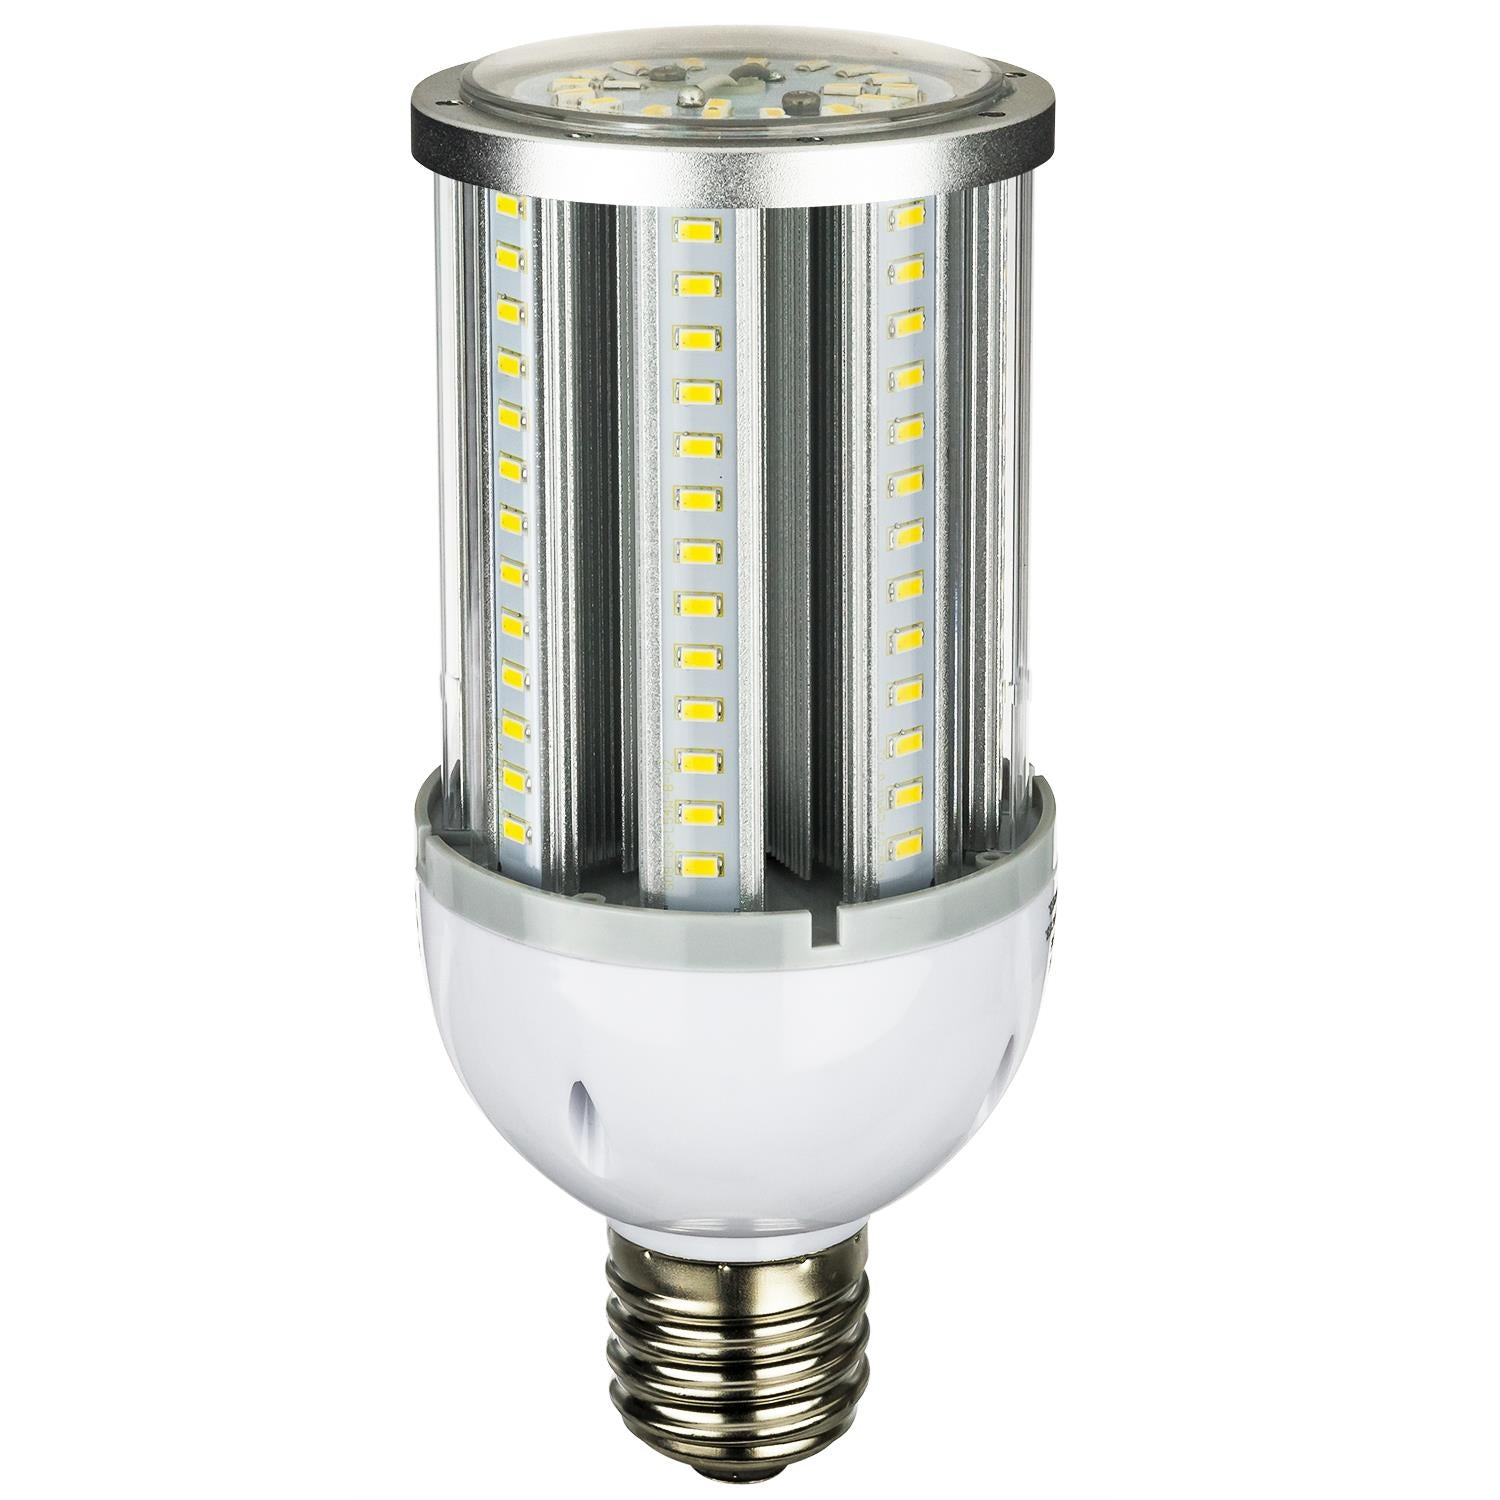 SUNLITE 36w E26 Medium Base LED (70-100 MHL/HPSw Equivalent) 5000K Super White